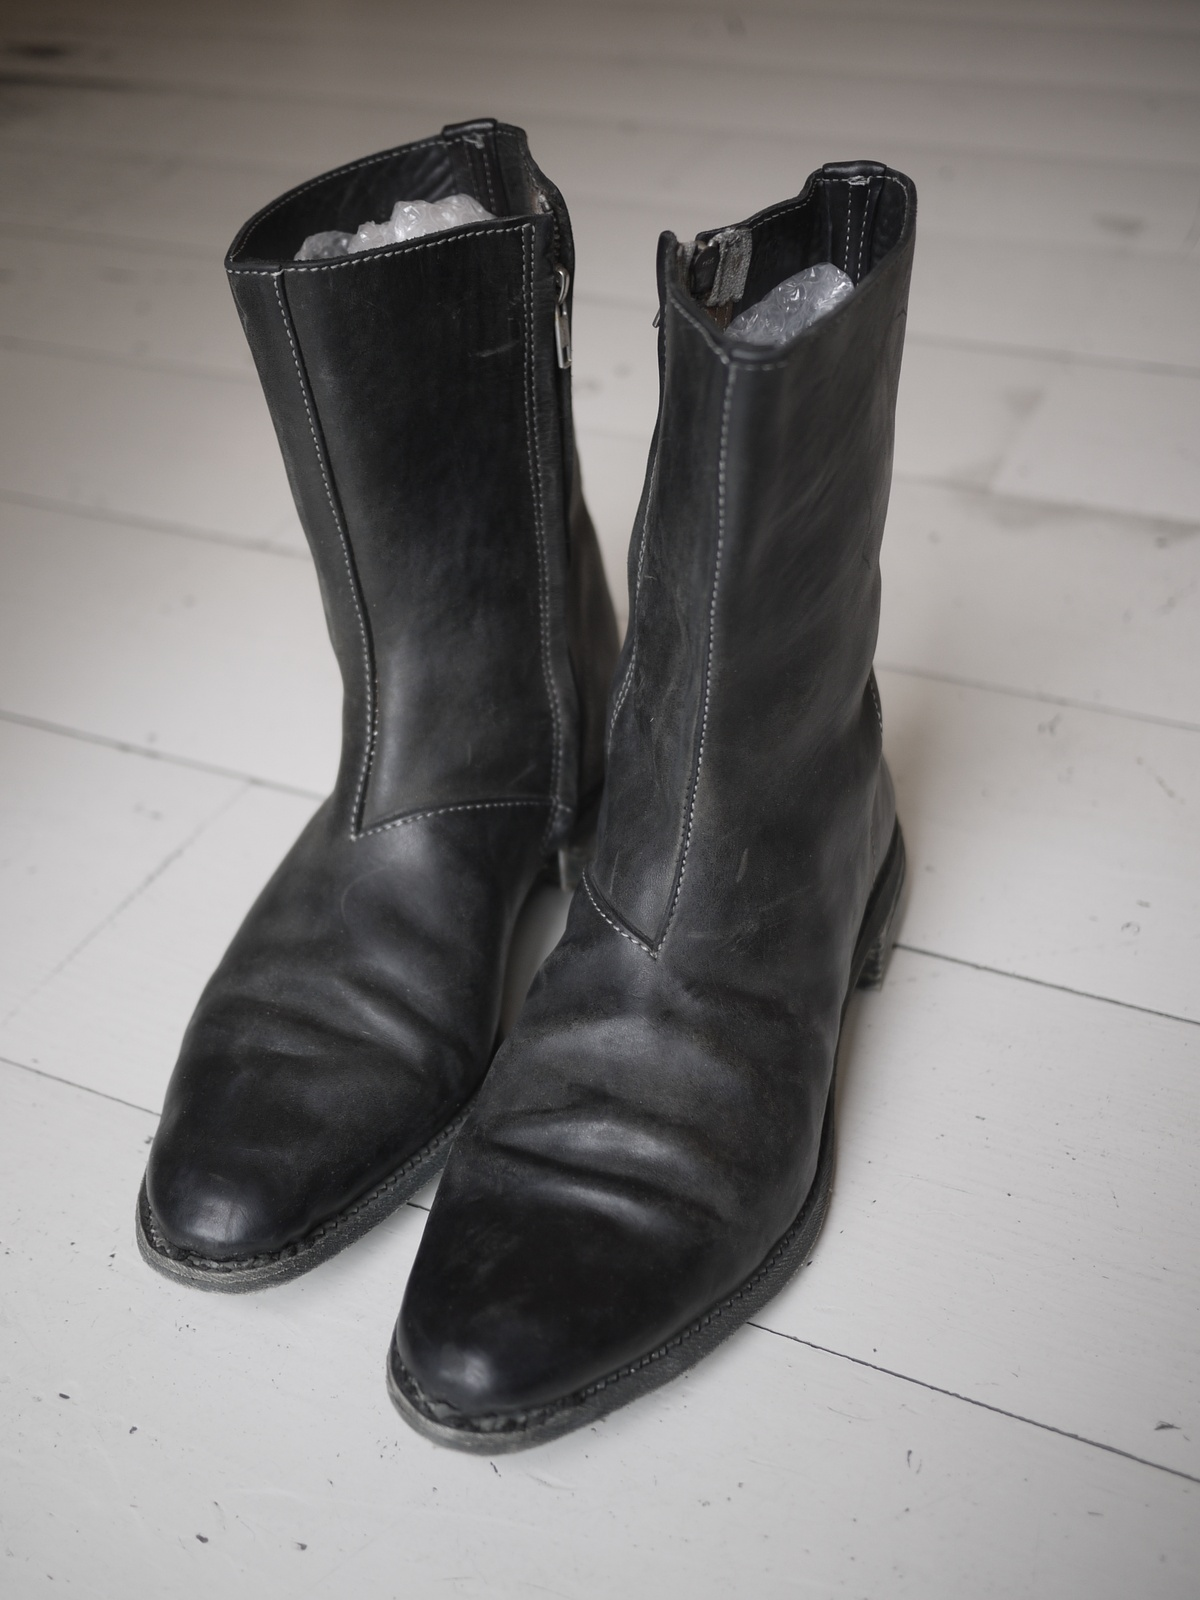 Carol Christian Poell Ccp Zipper Boots With Rubber Sole